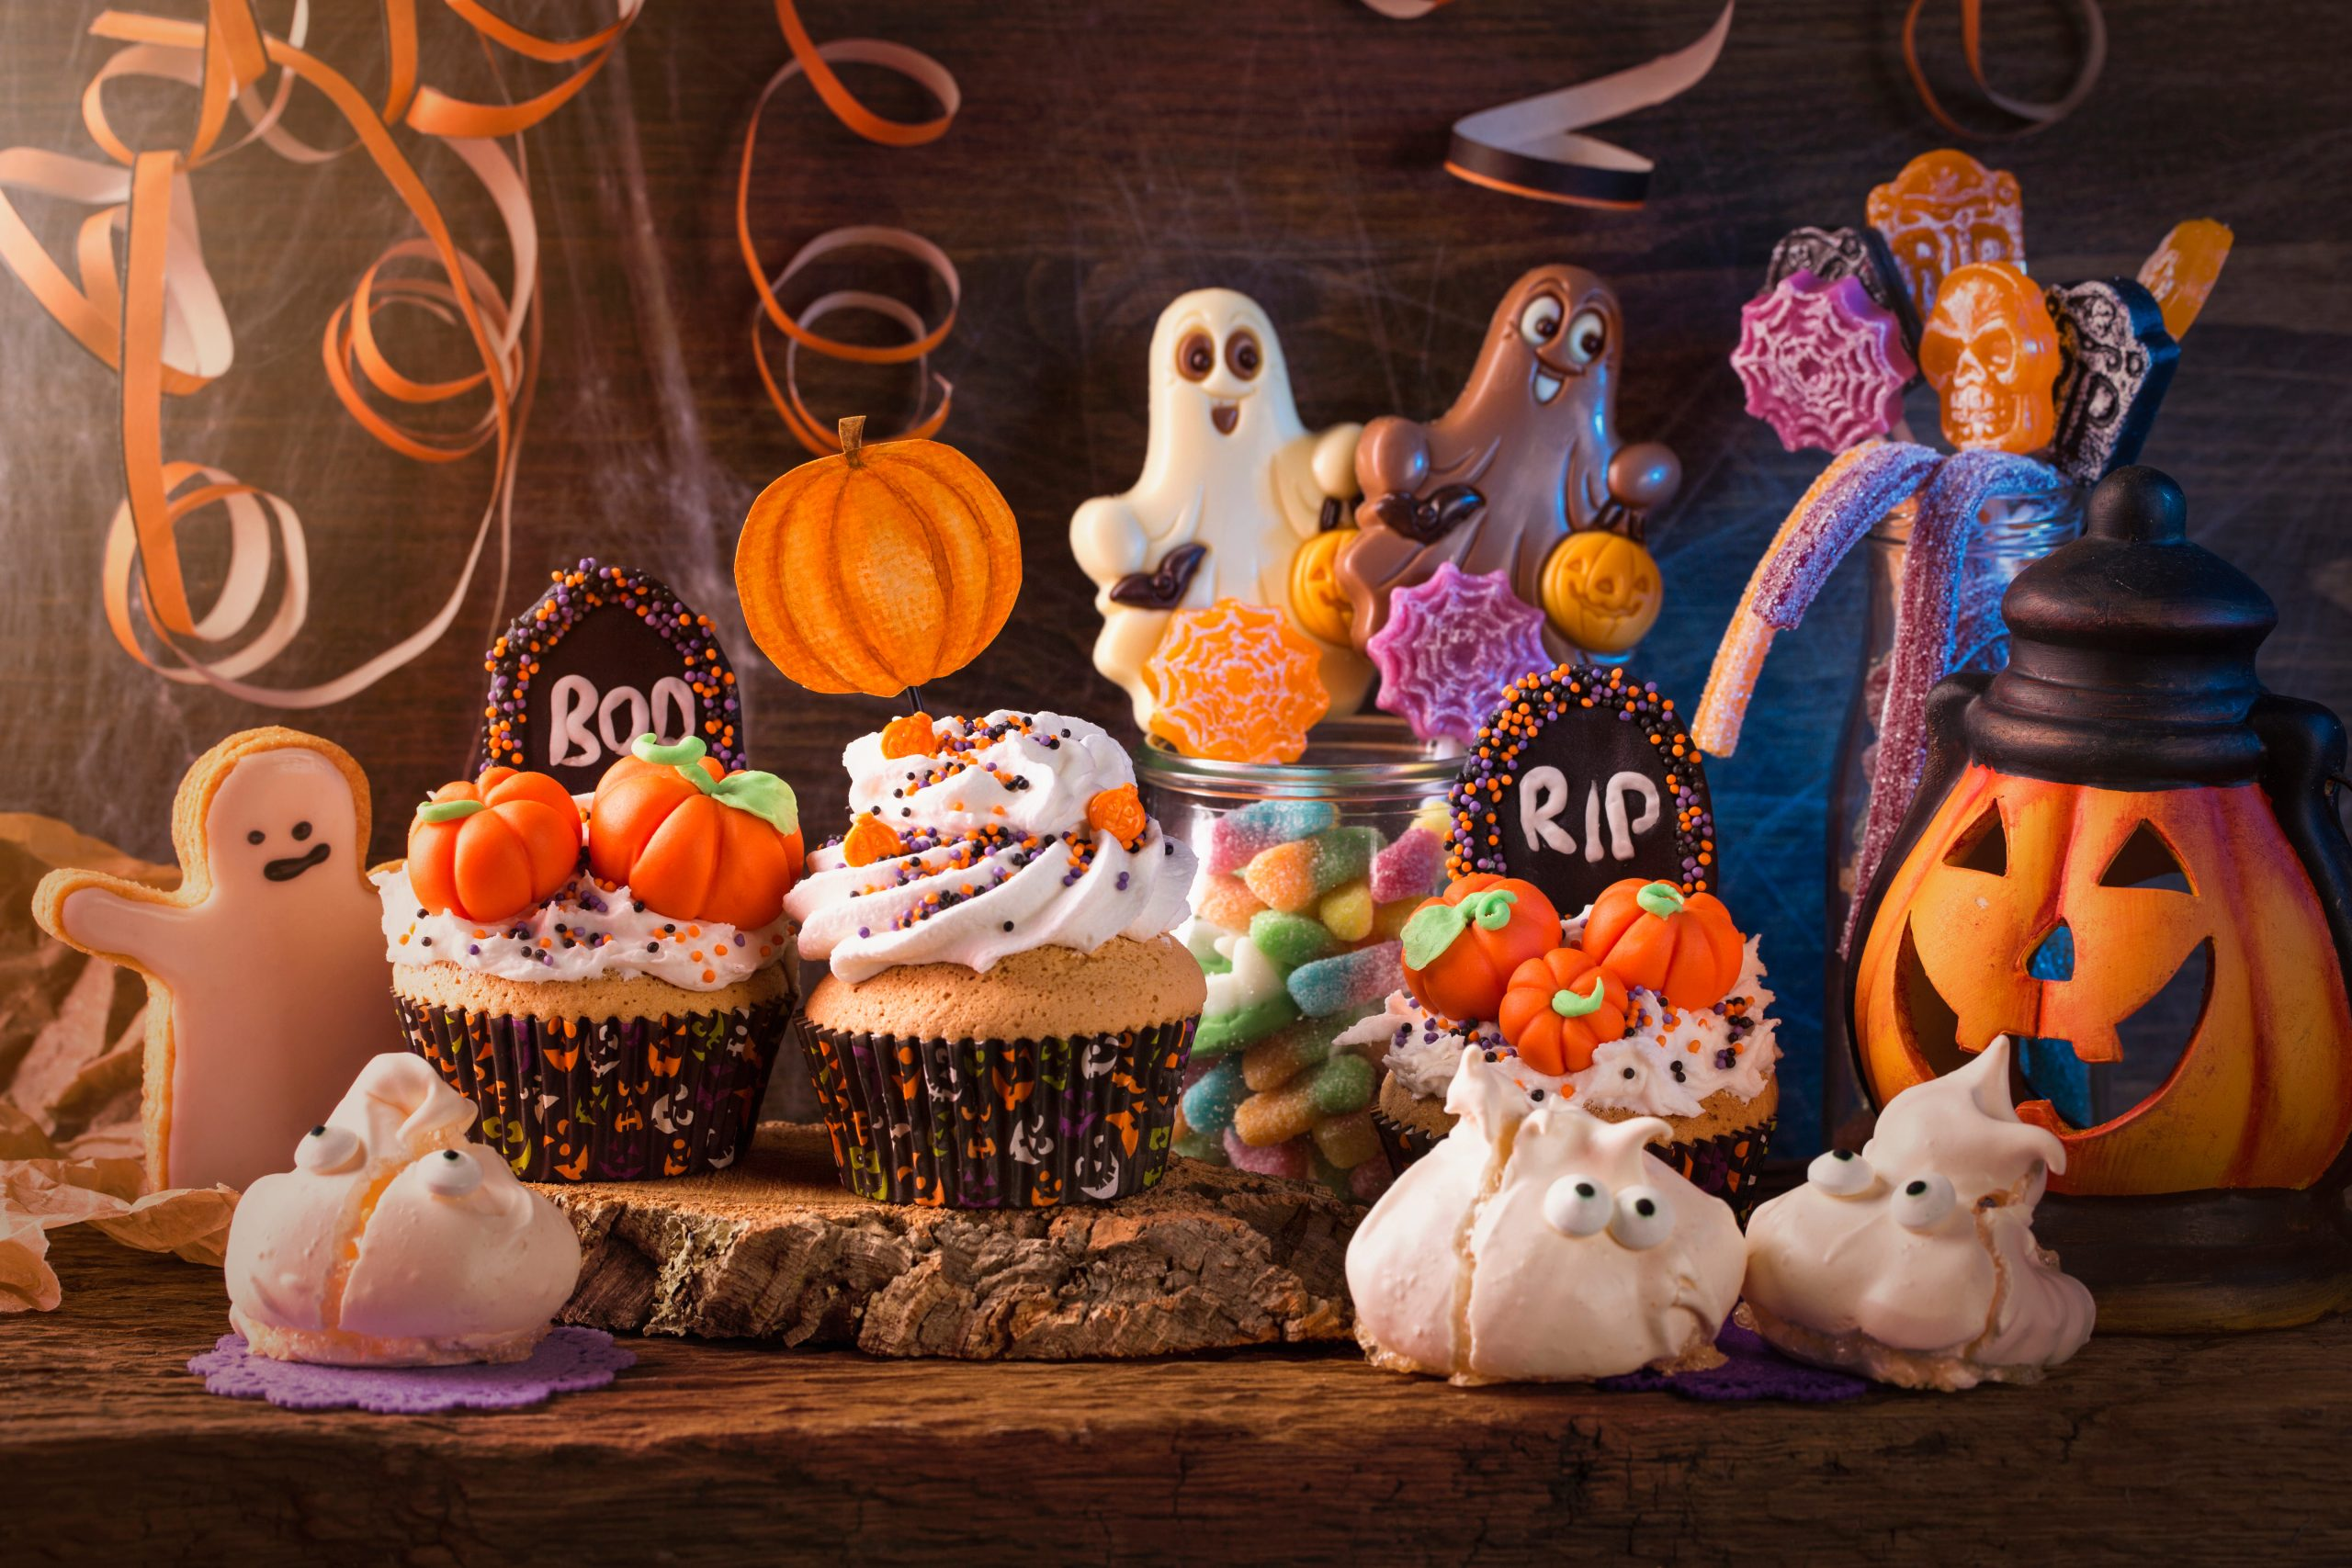 Sweet Dreams are made of this… NR's annual confectionery feature